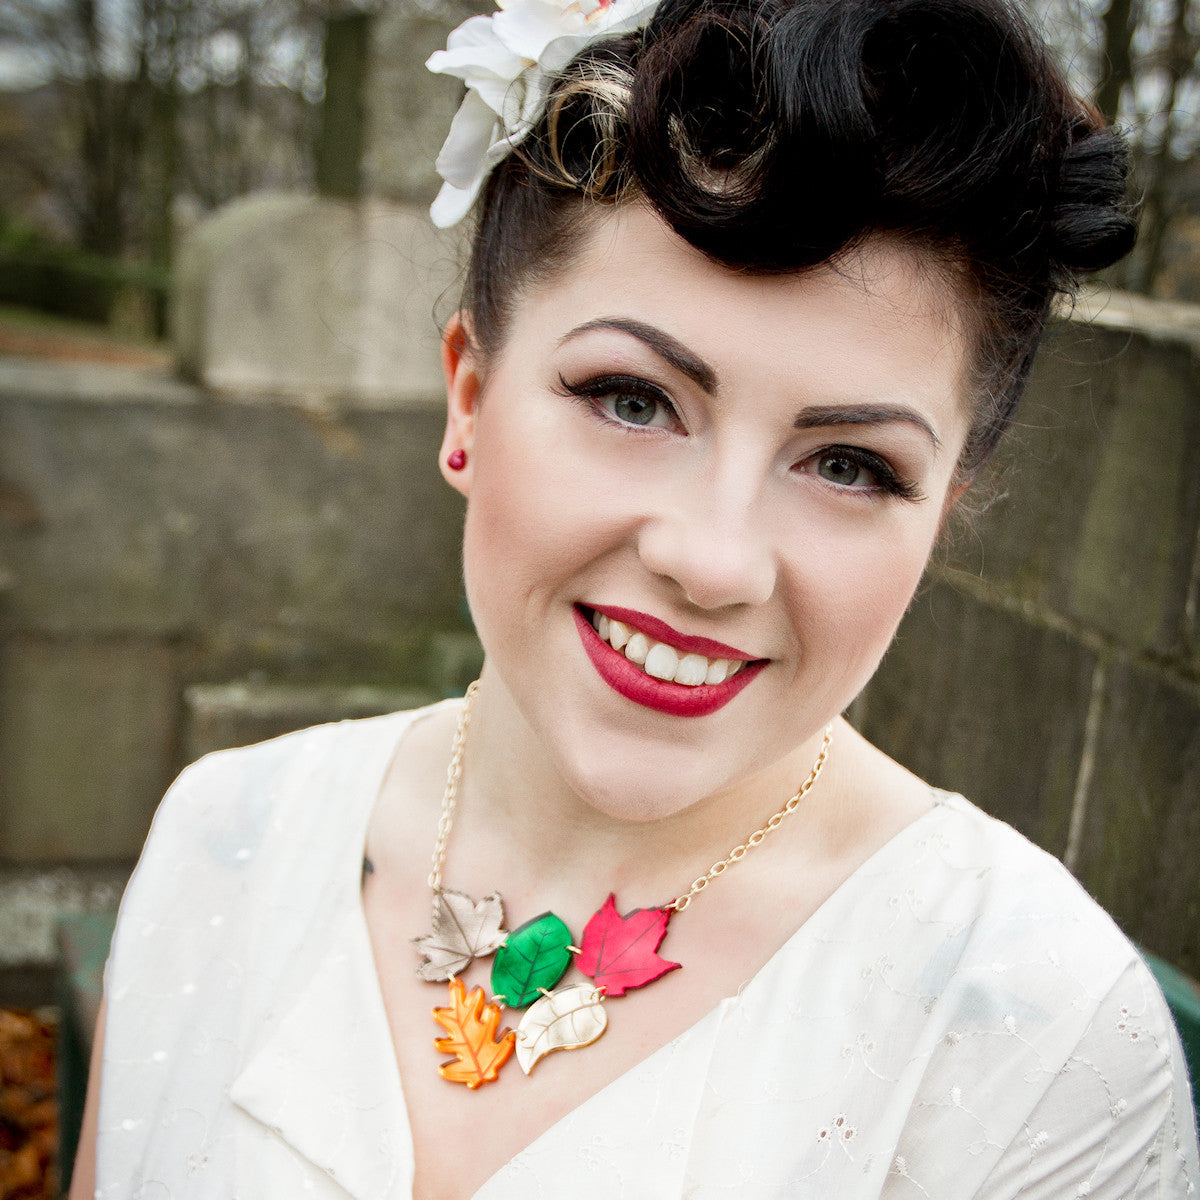 Sugar & Vice Autumn Leaves Cluster Necklace modelled